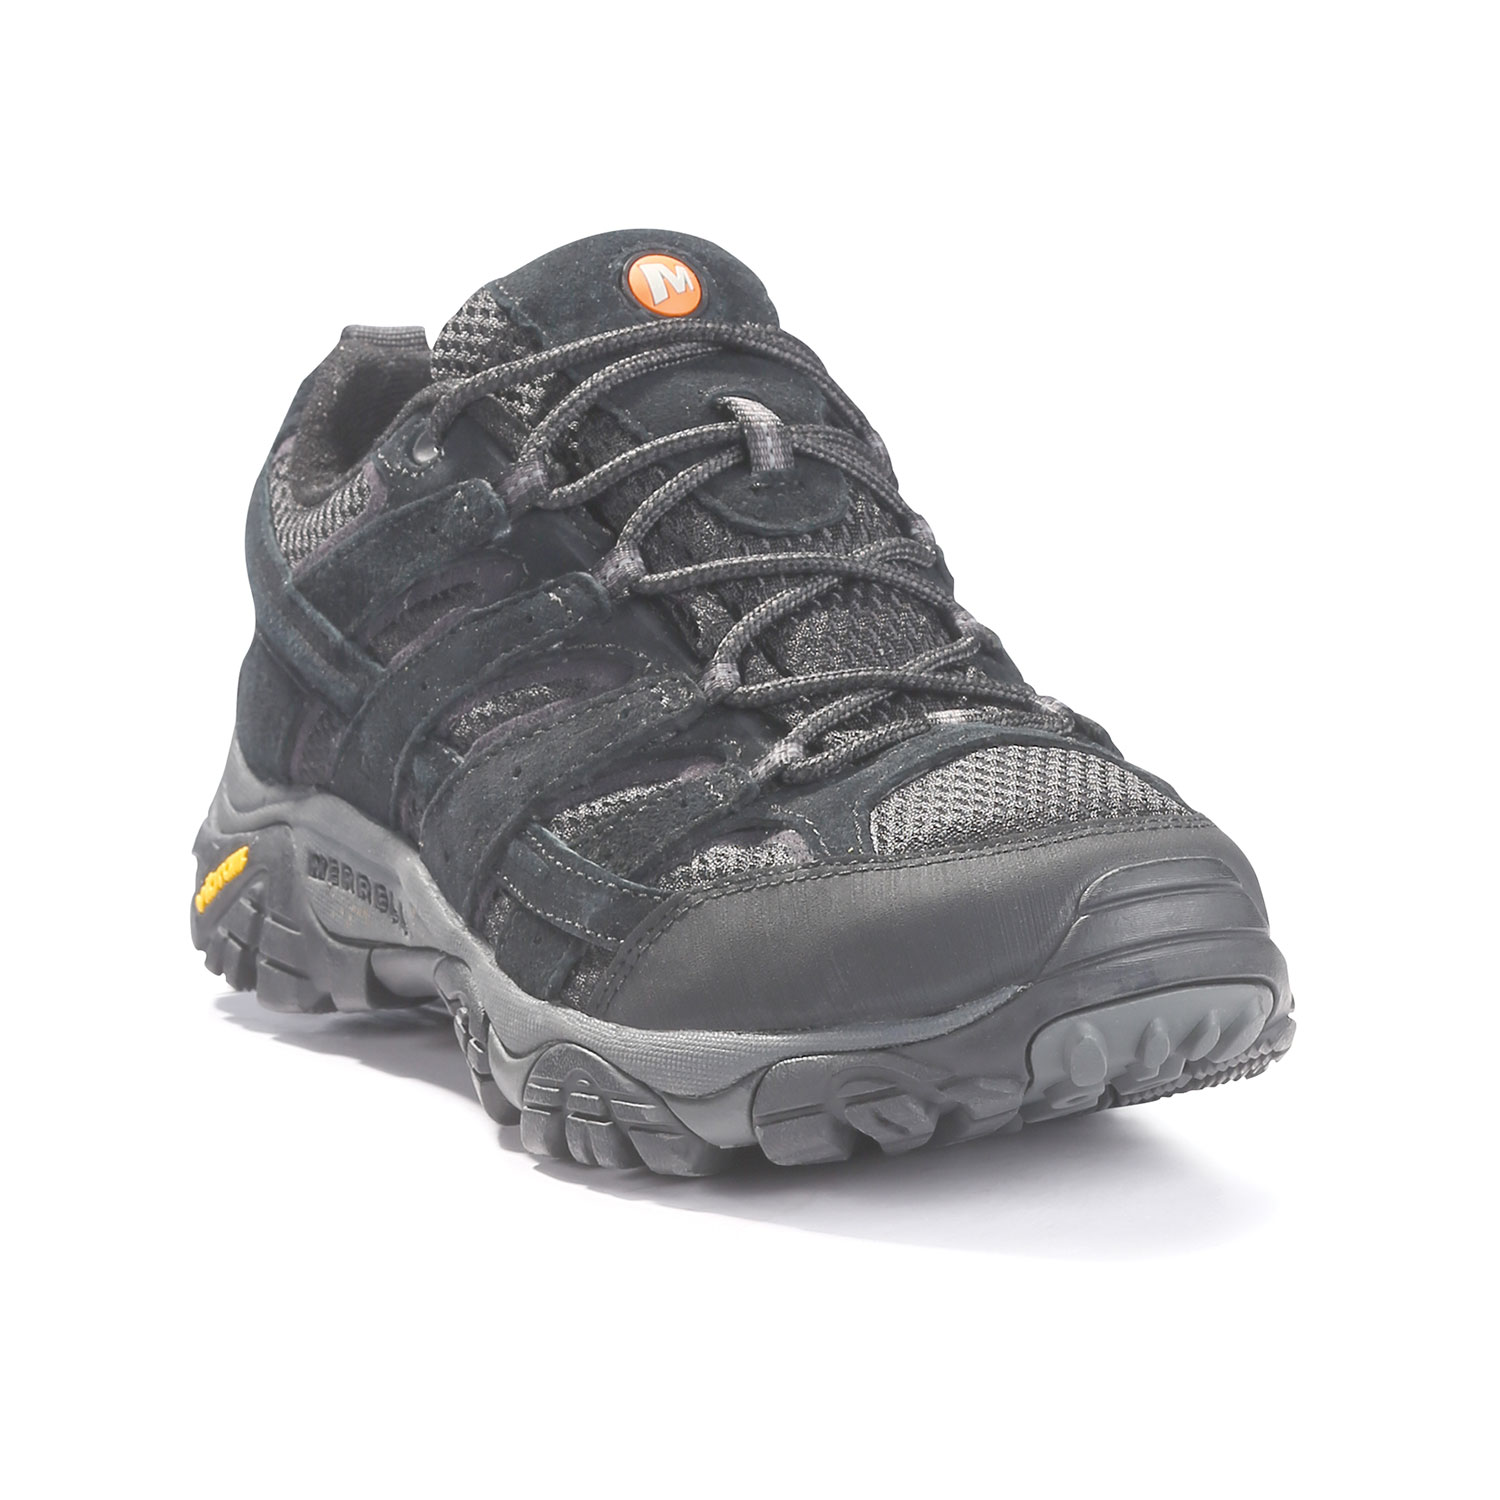 Merrell Moab 2 Vent Mid Oxford